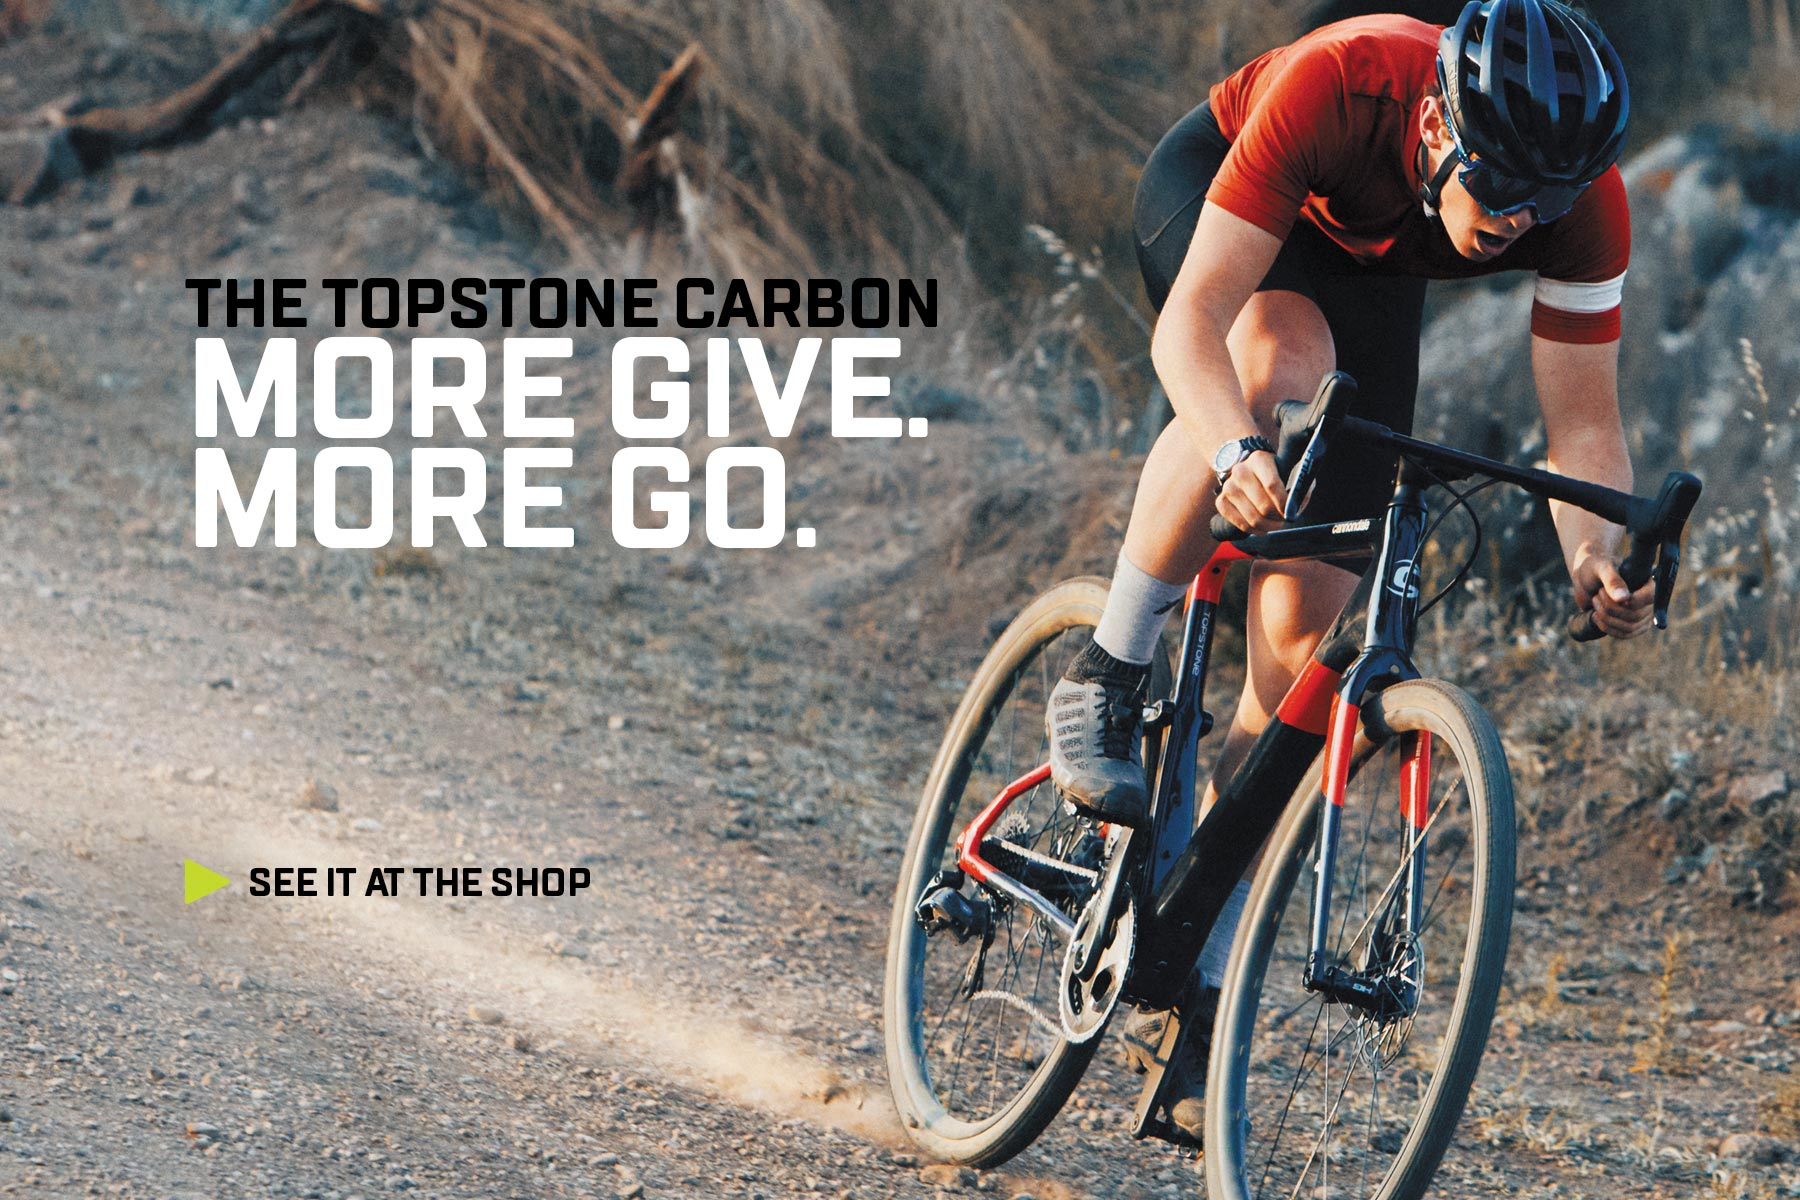 The Cannondale Topstone rolling down a gravel road.